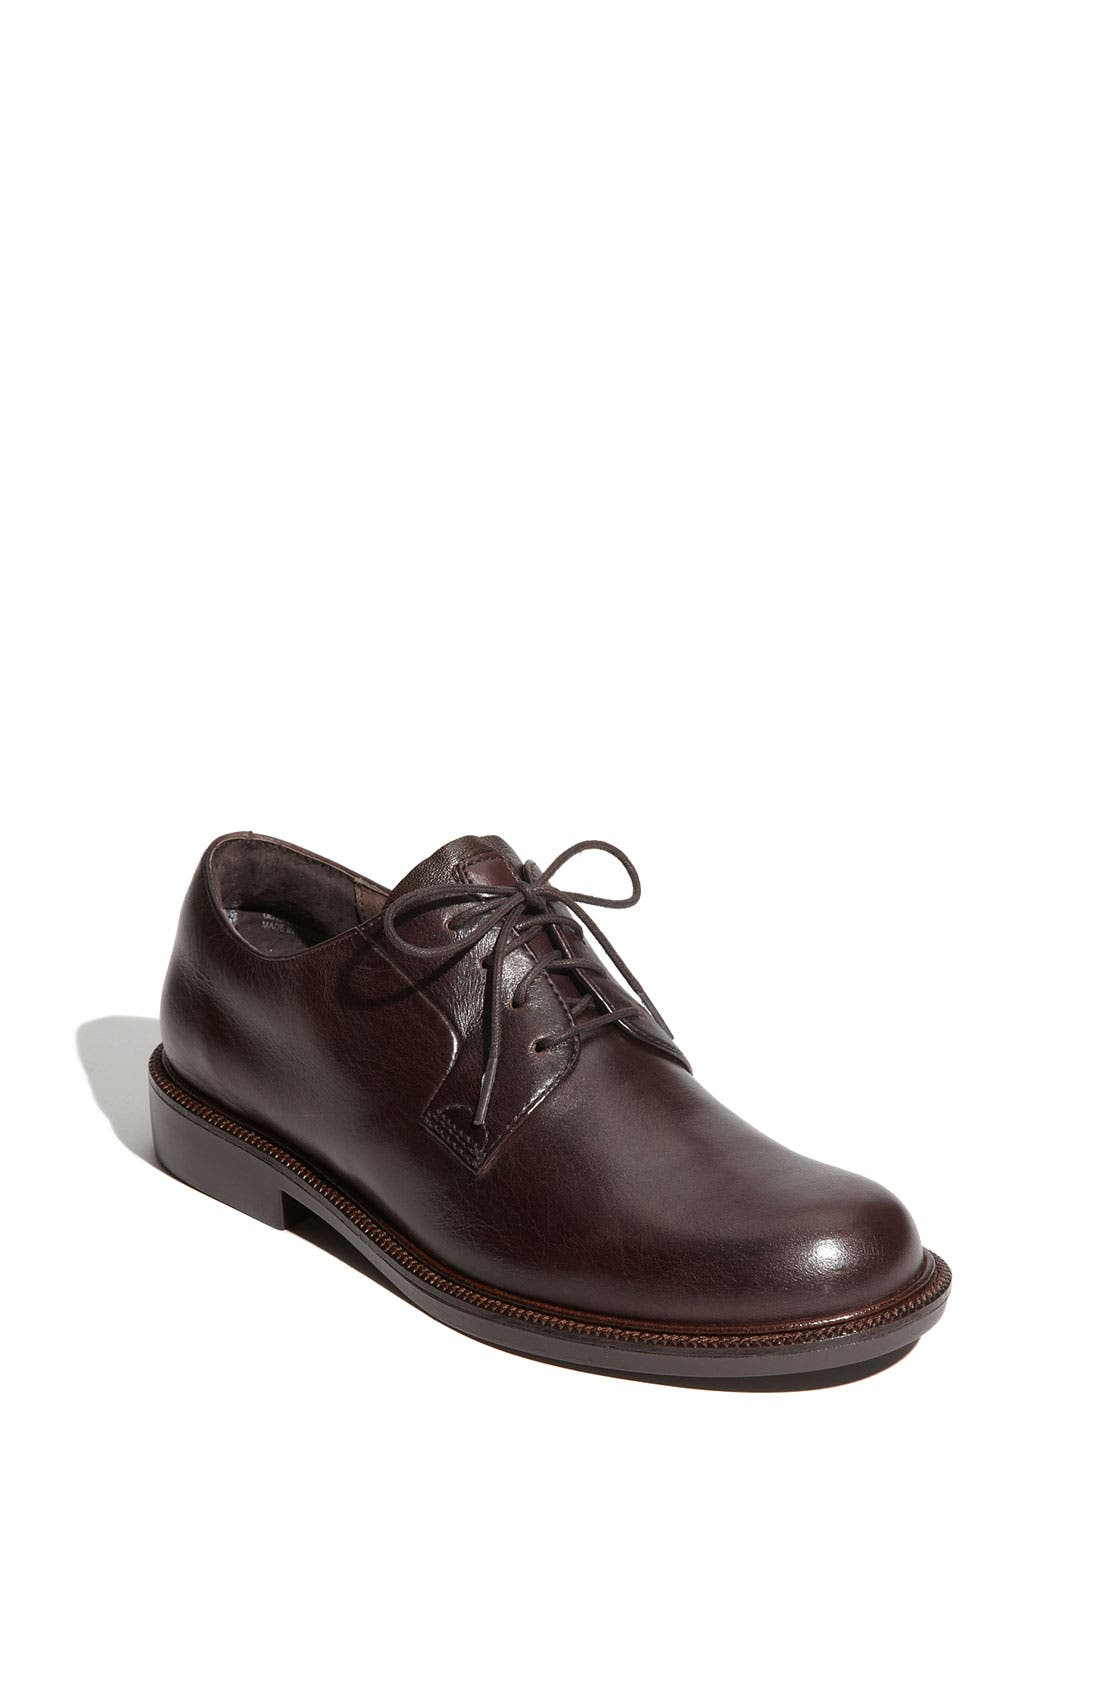 Main Image - Nordstrom 'Braden' Oxford (Toddler, Little Kid & Big Kid)